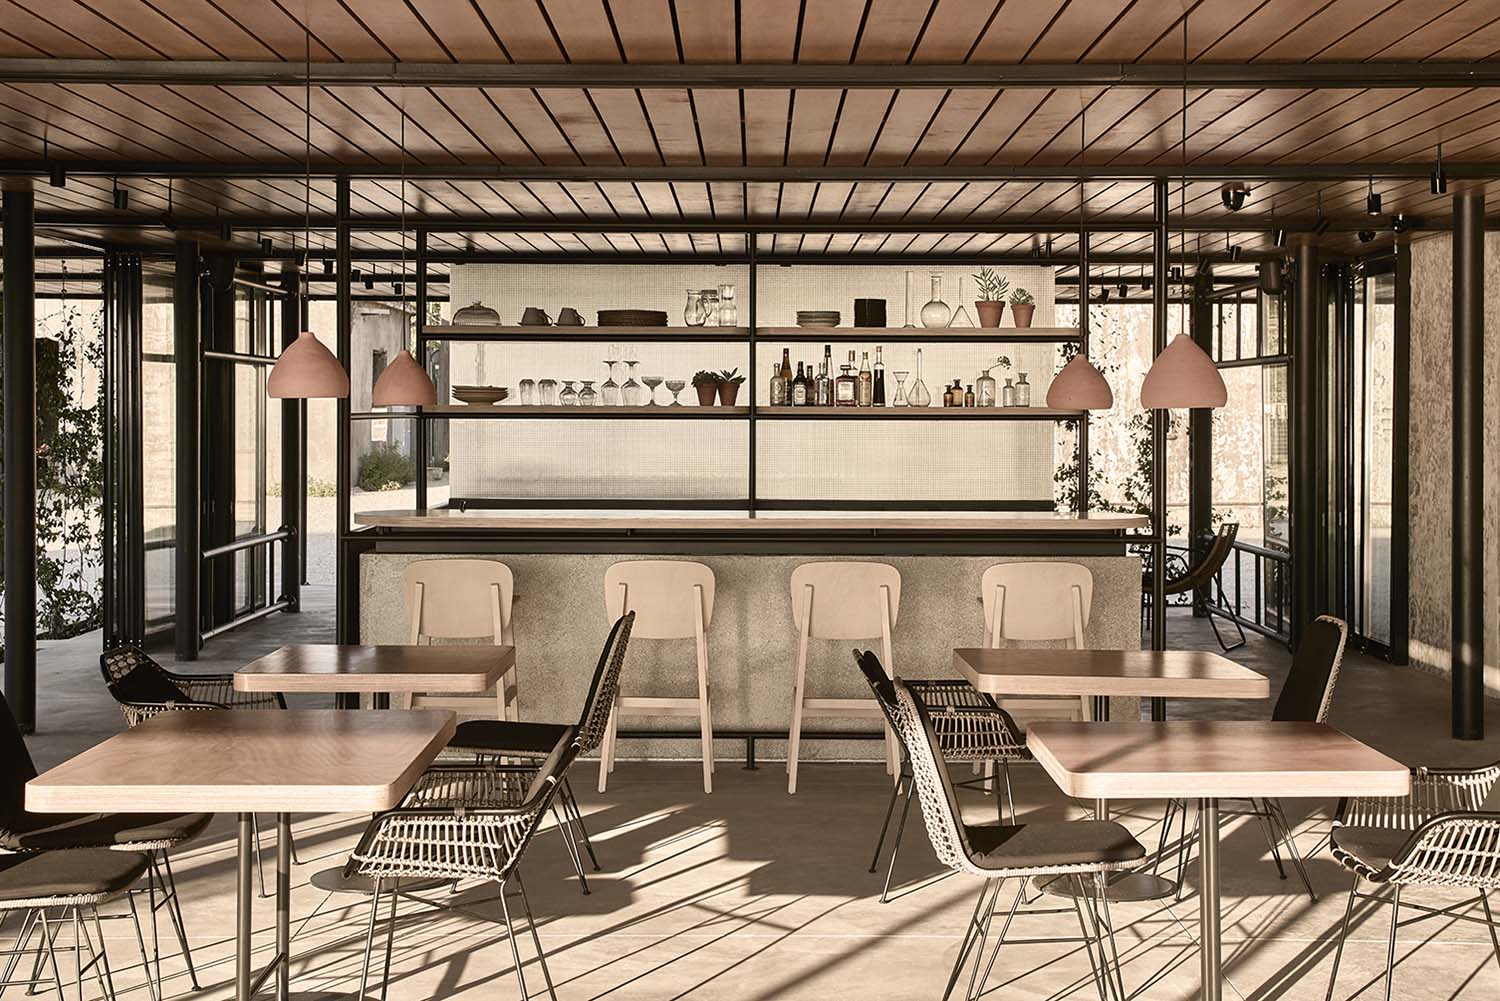 Dexamenes Seaside Hotel, Peloponnese Design Hotel by K-Studio